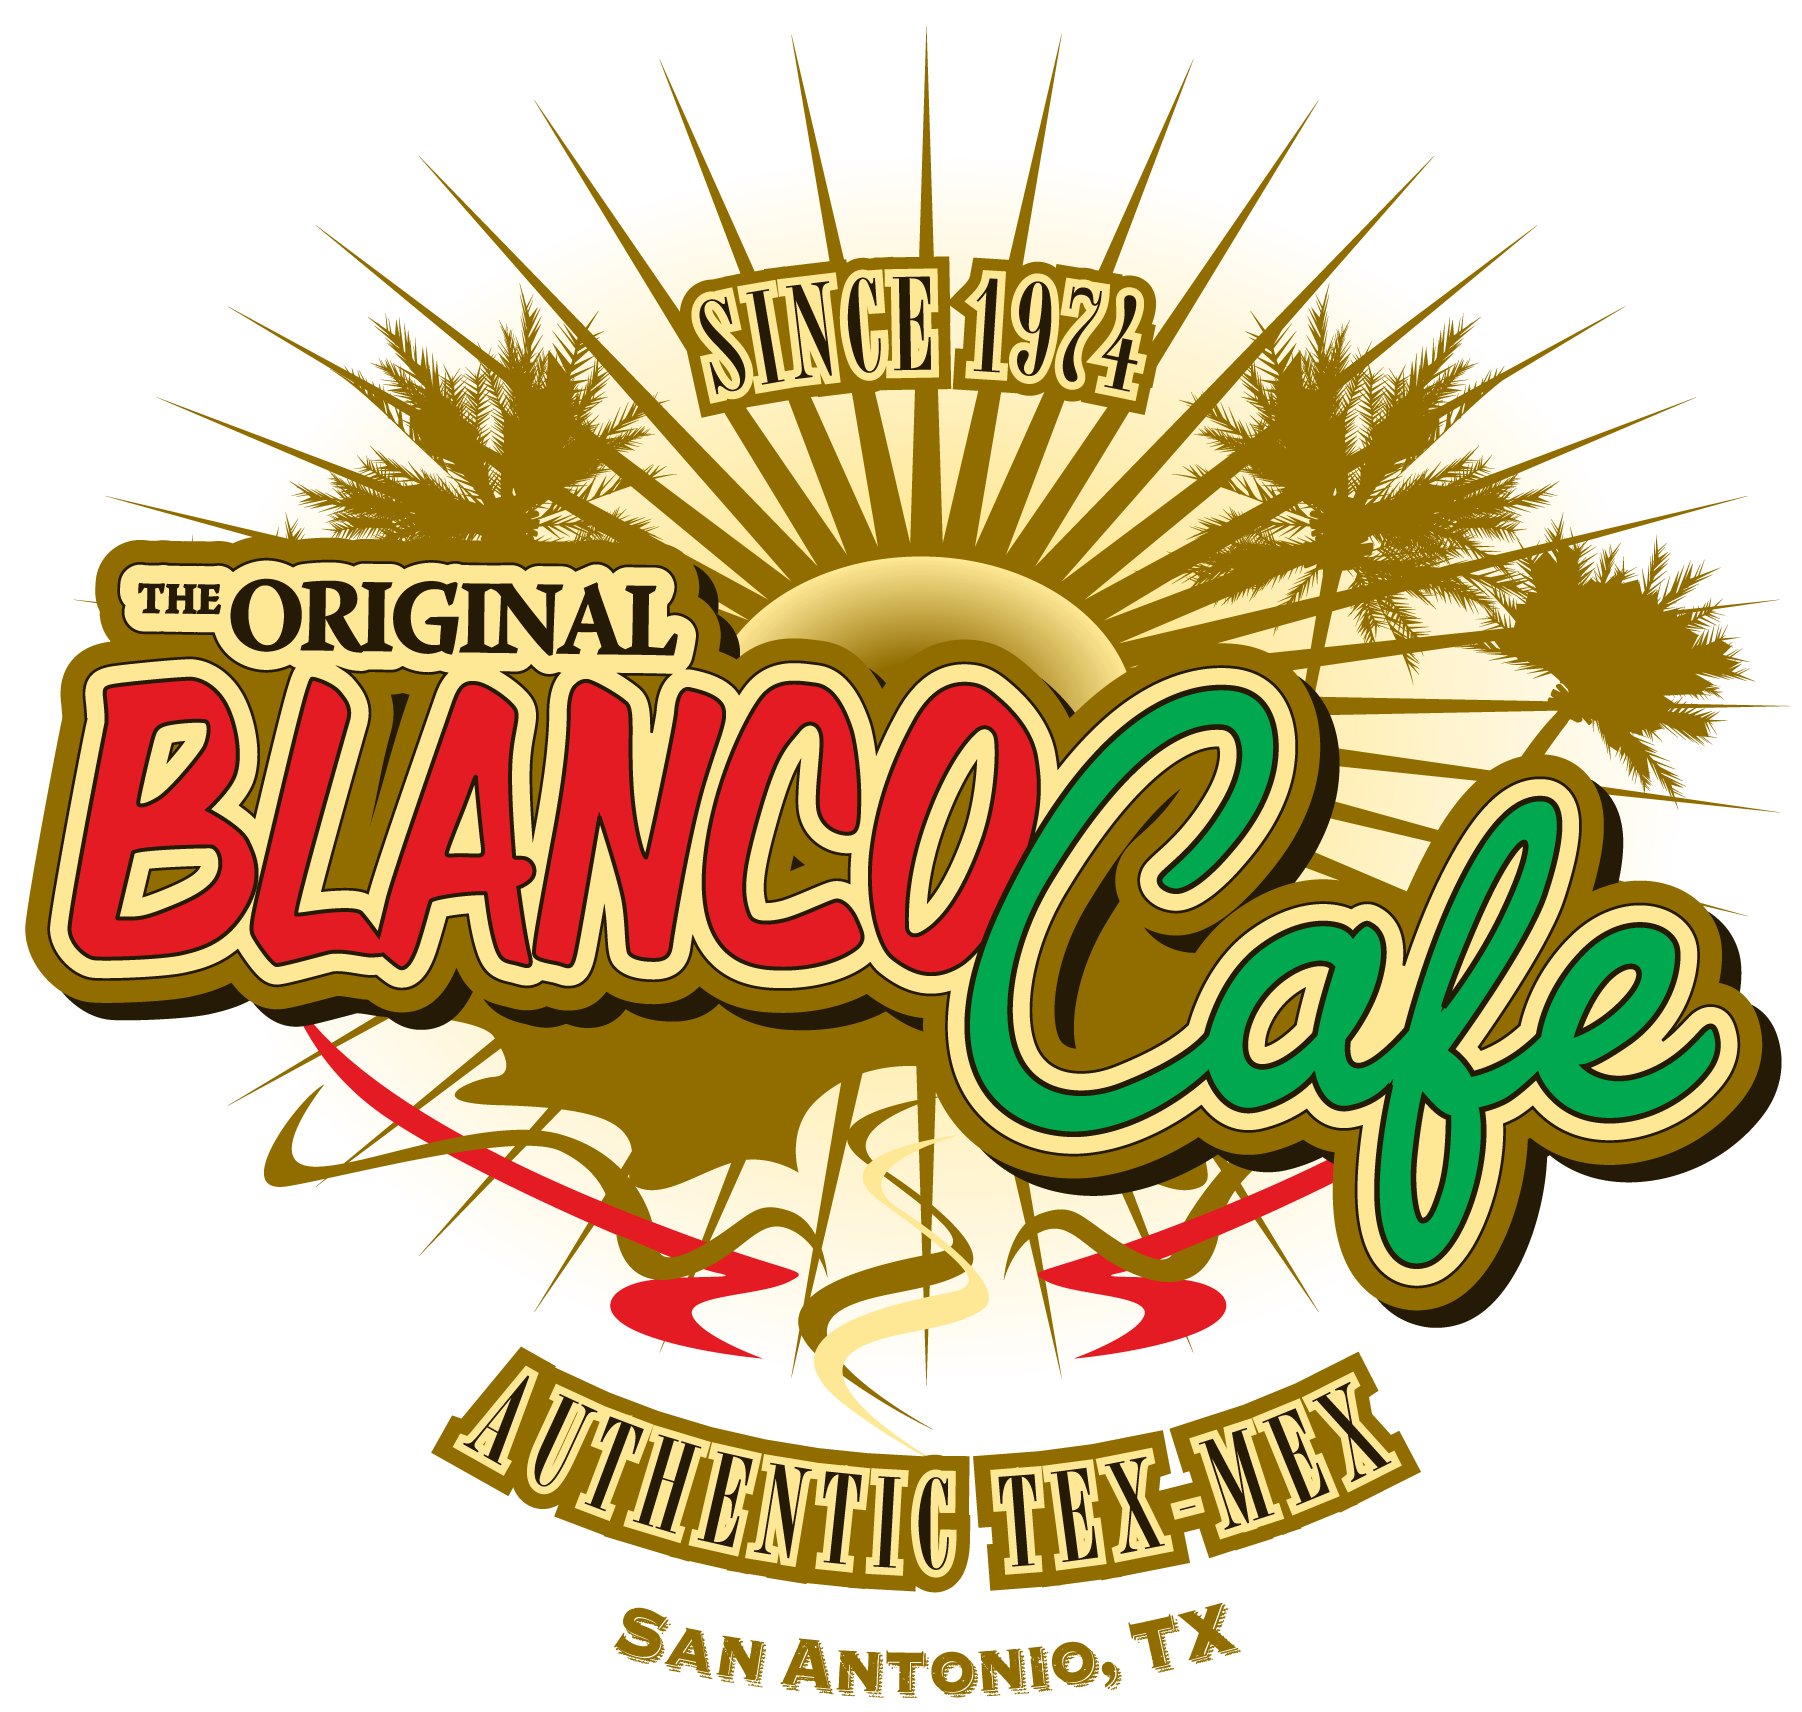 Fish taco clipart banner transparent stock The Original Blanco Cafe - Home banner transparent stock